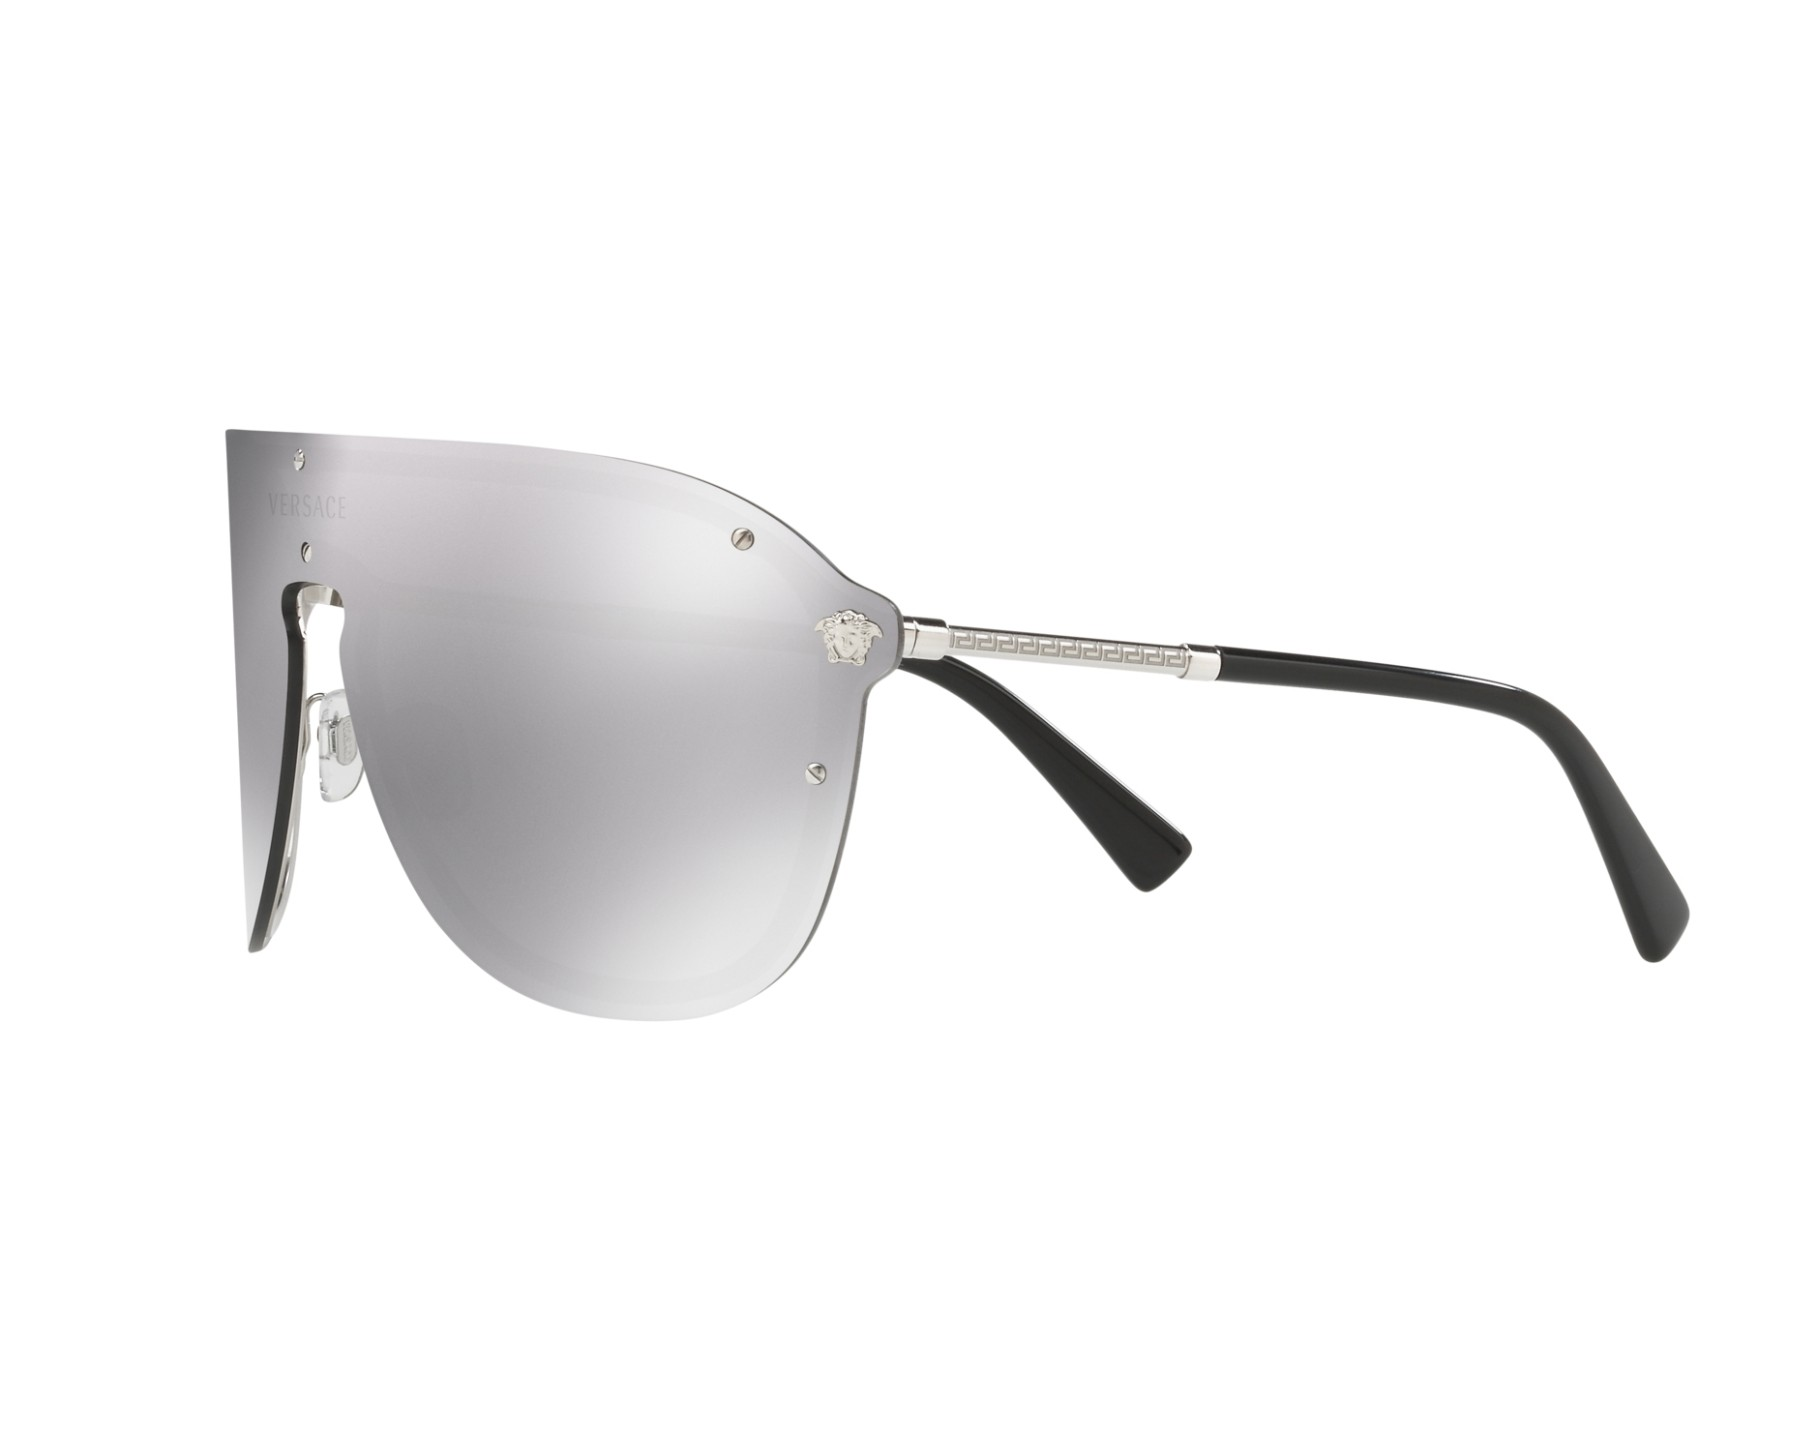 8434cff734 Sunglasses Versace VE-2180 10006G 44- Silver 360 degree view 3